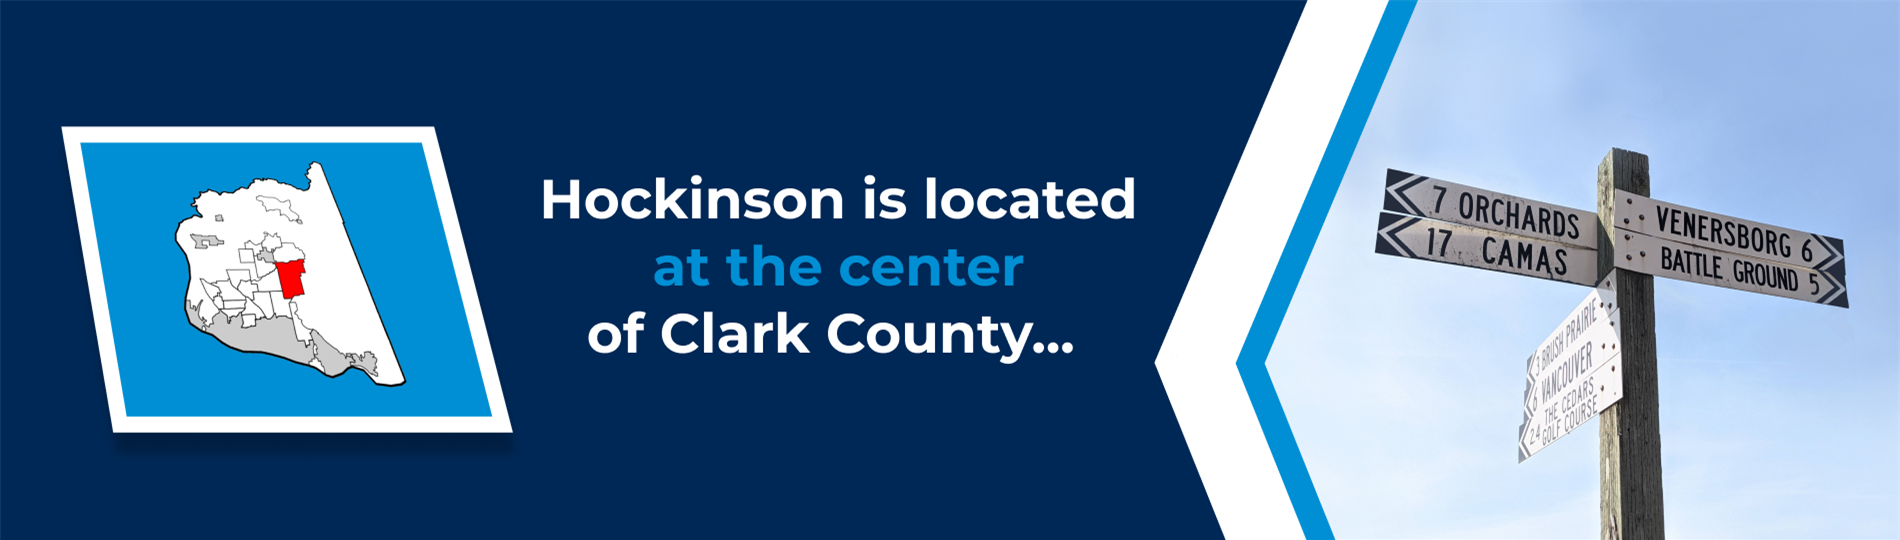 Hockinson is Located at the Center of Clark County